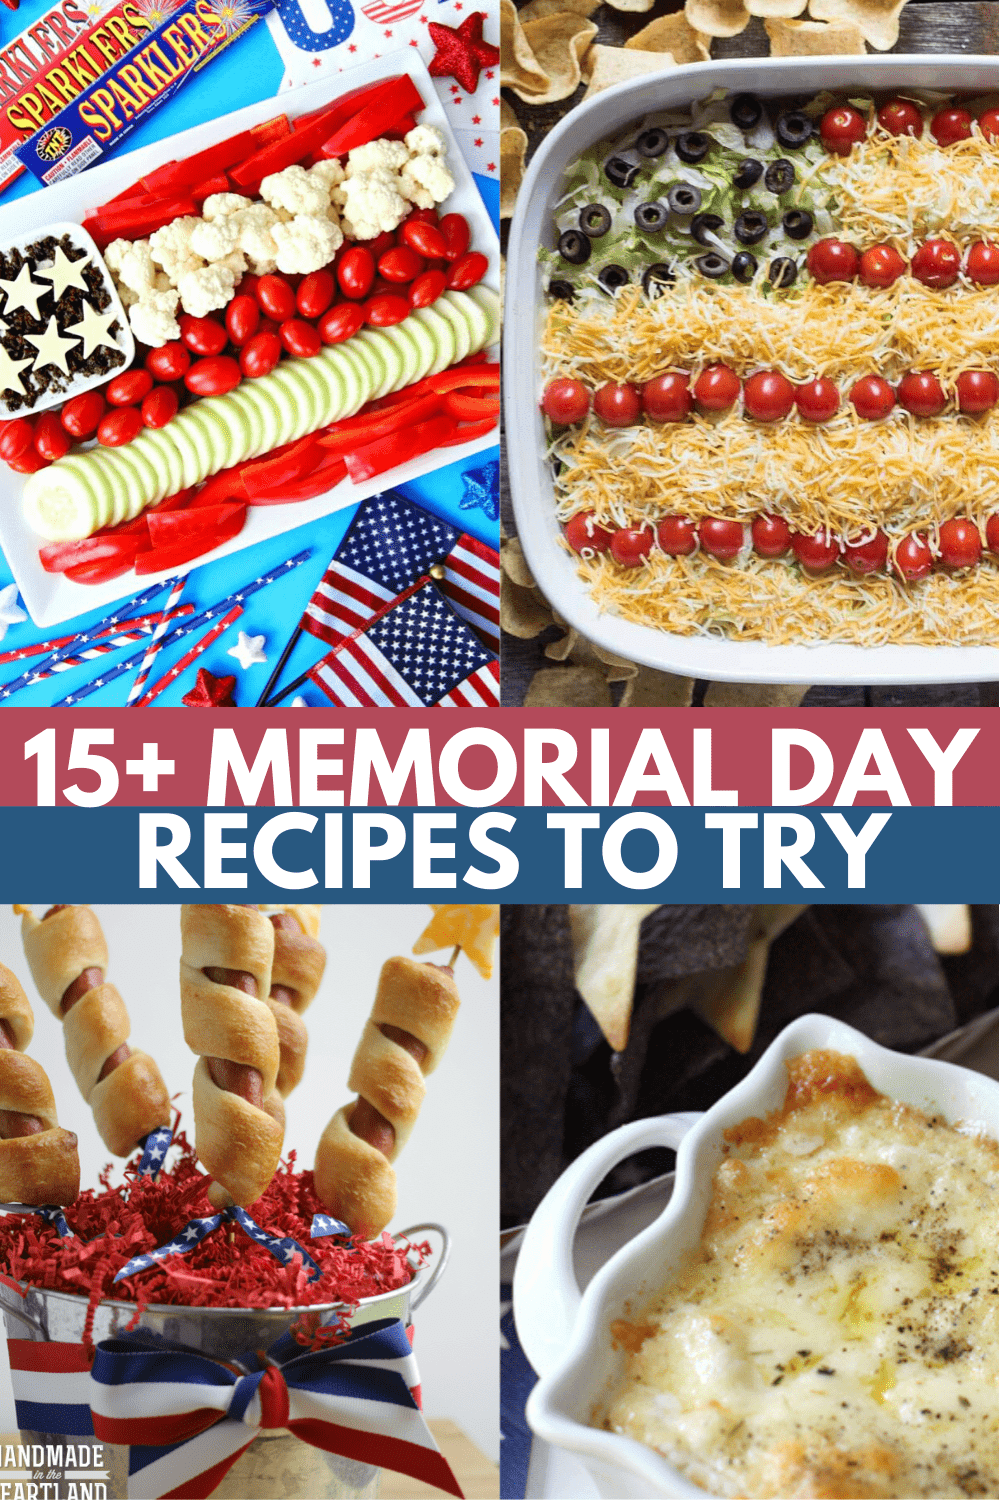 Delicious Memorial Day Recipes For You to Try!